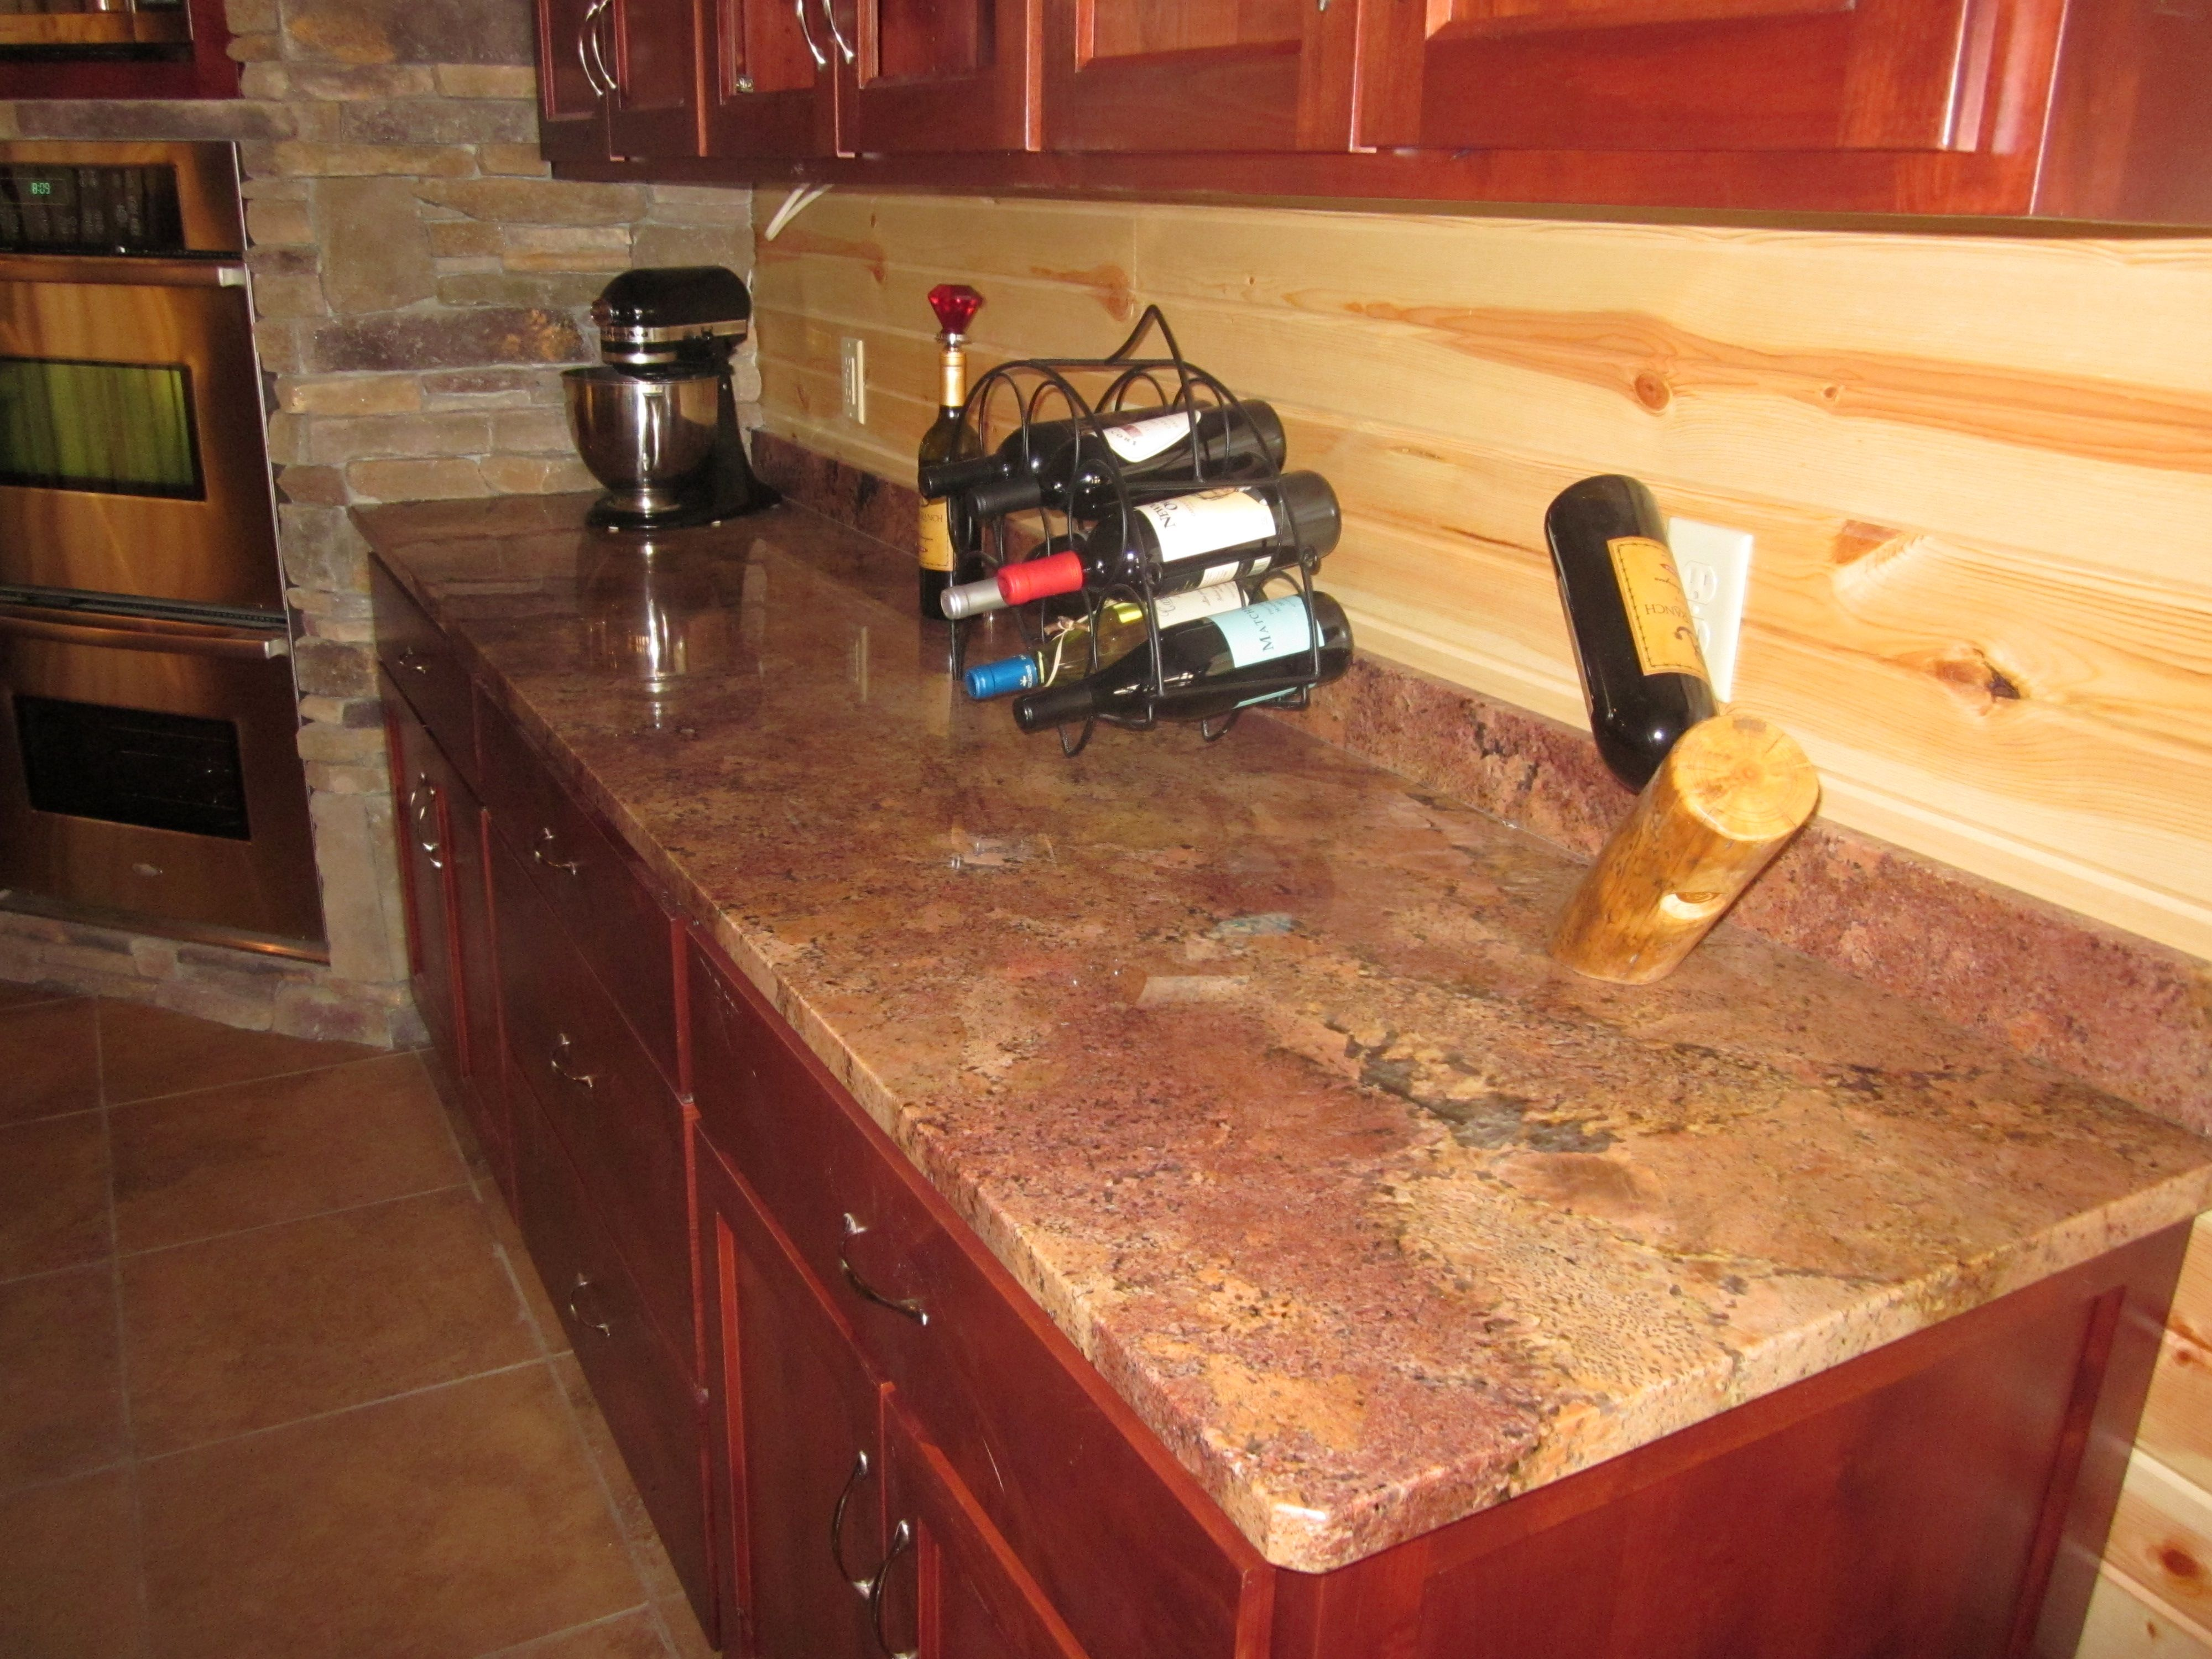 vibrant red granite kitchen countertops granite countertops kitchen Beautiful Bordeaux red granite countertop